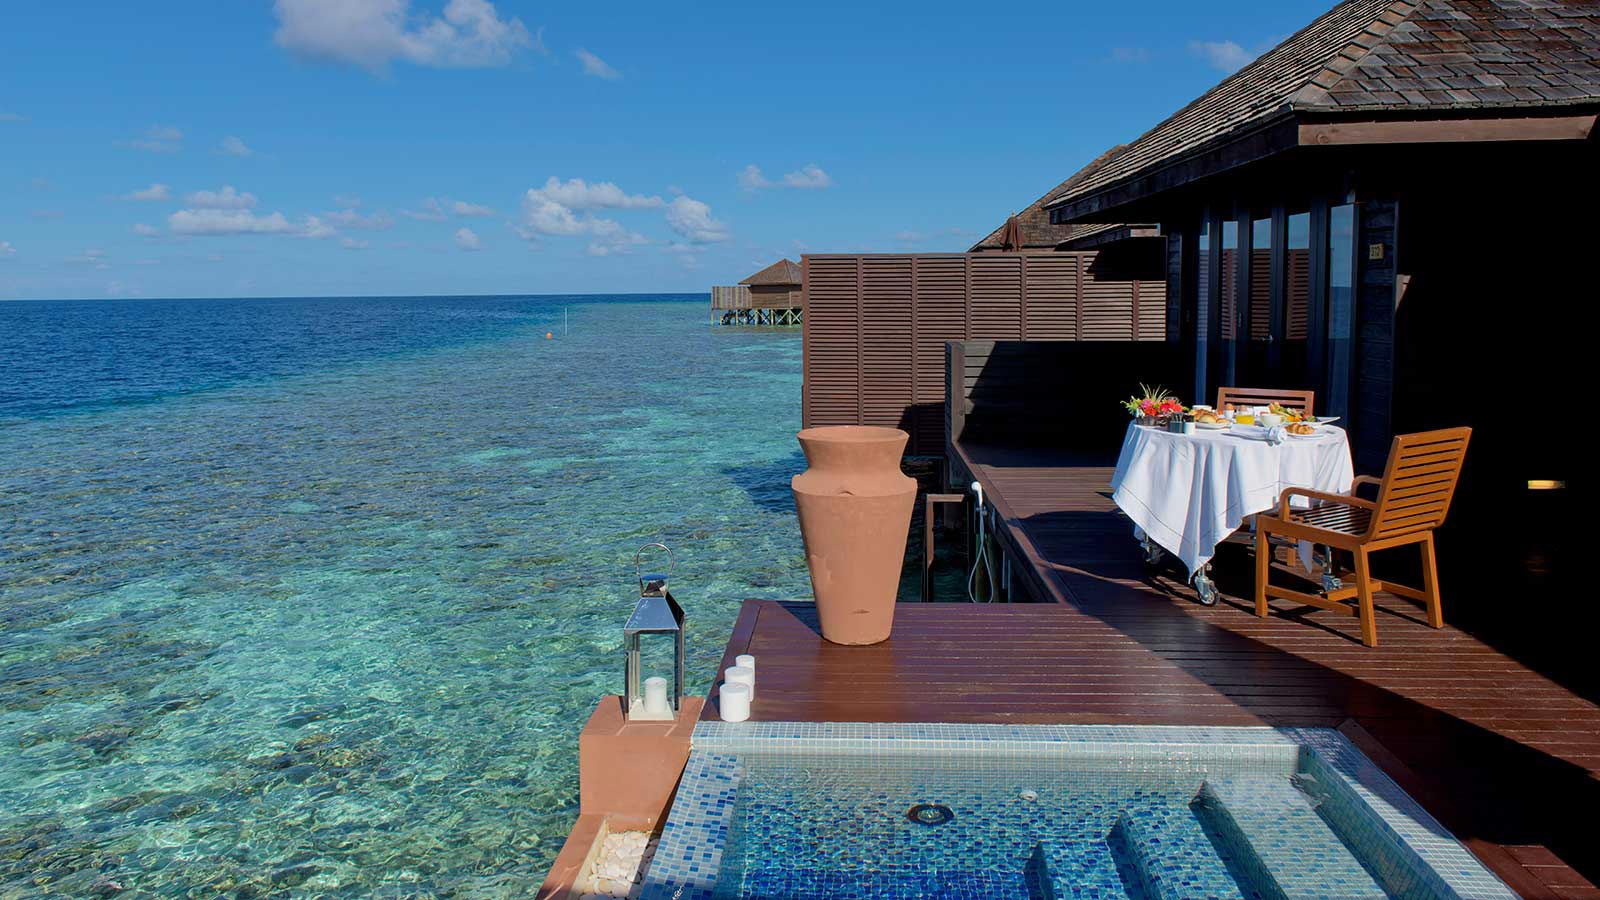 Maldives Beach Resort Prices The Best Beaches In World